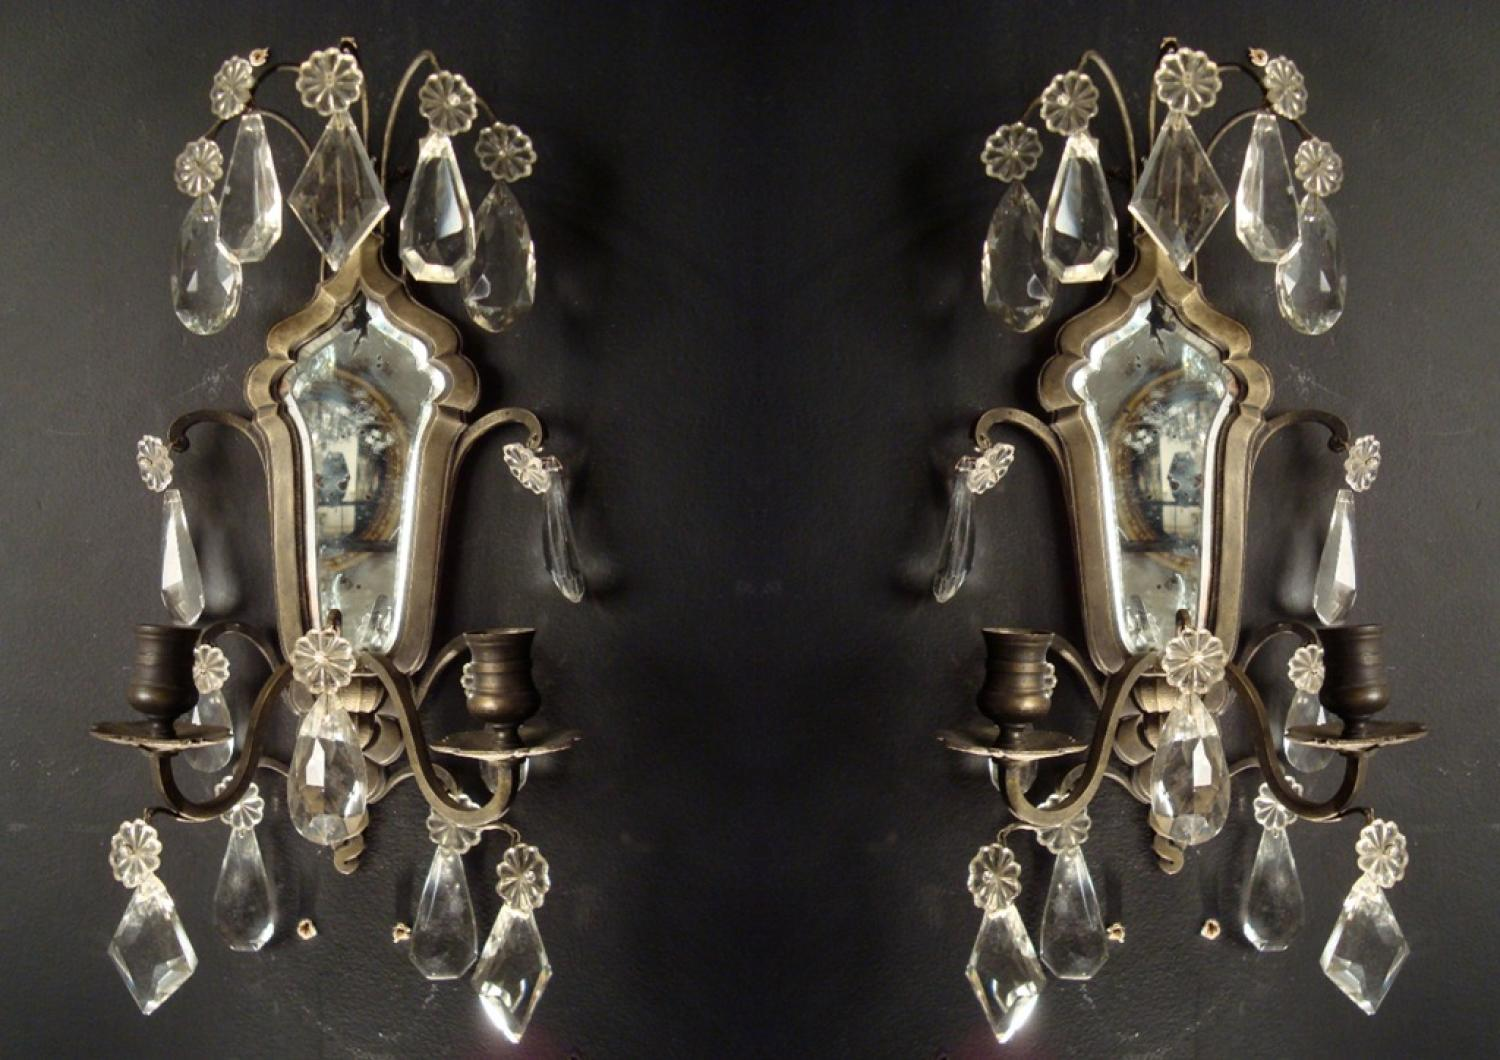 A pair of bronze and crystal wall lights